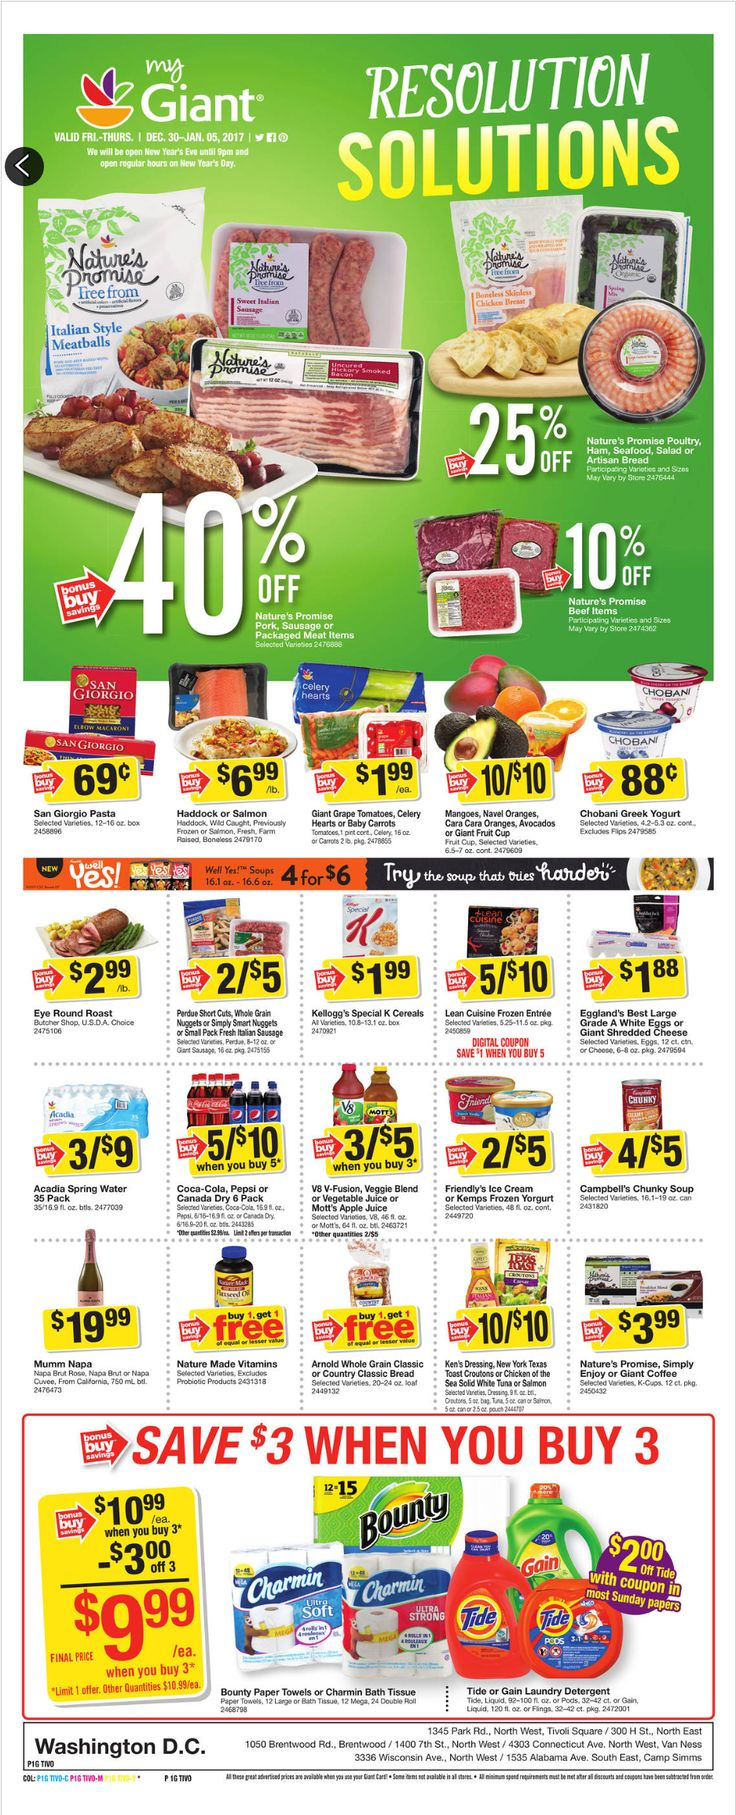 Giant Food Weekly Ad December 30 - January 5, 2017 - http://www.olcatalog.com/grocery/giant-food-weekly-ad.html